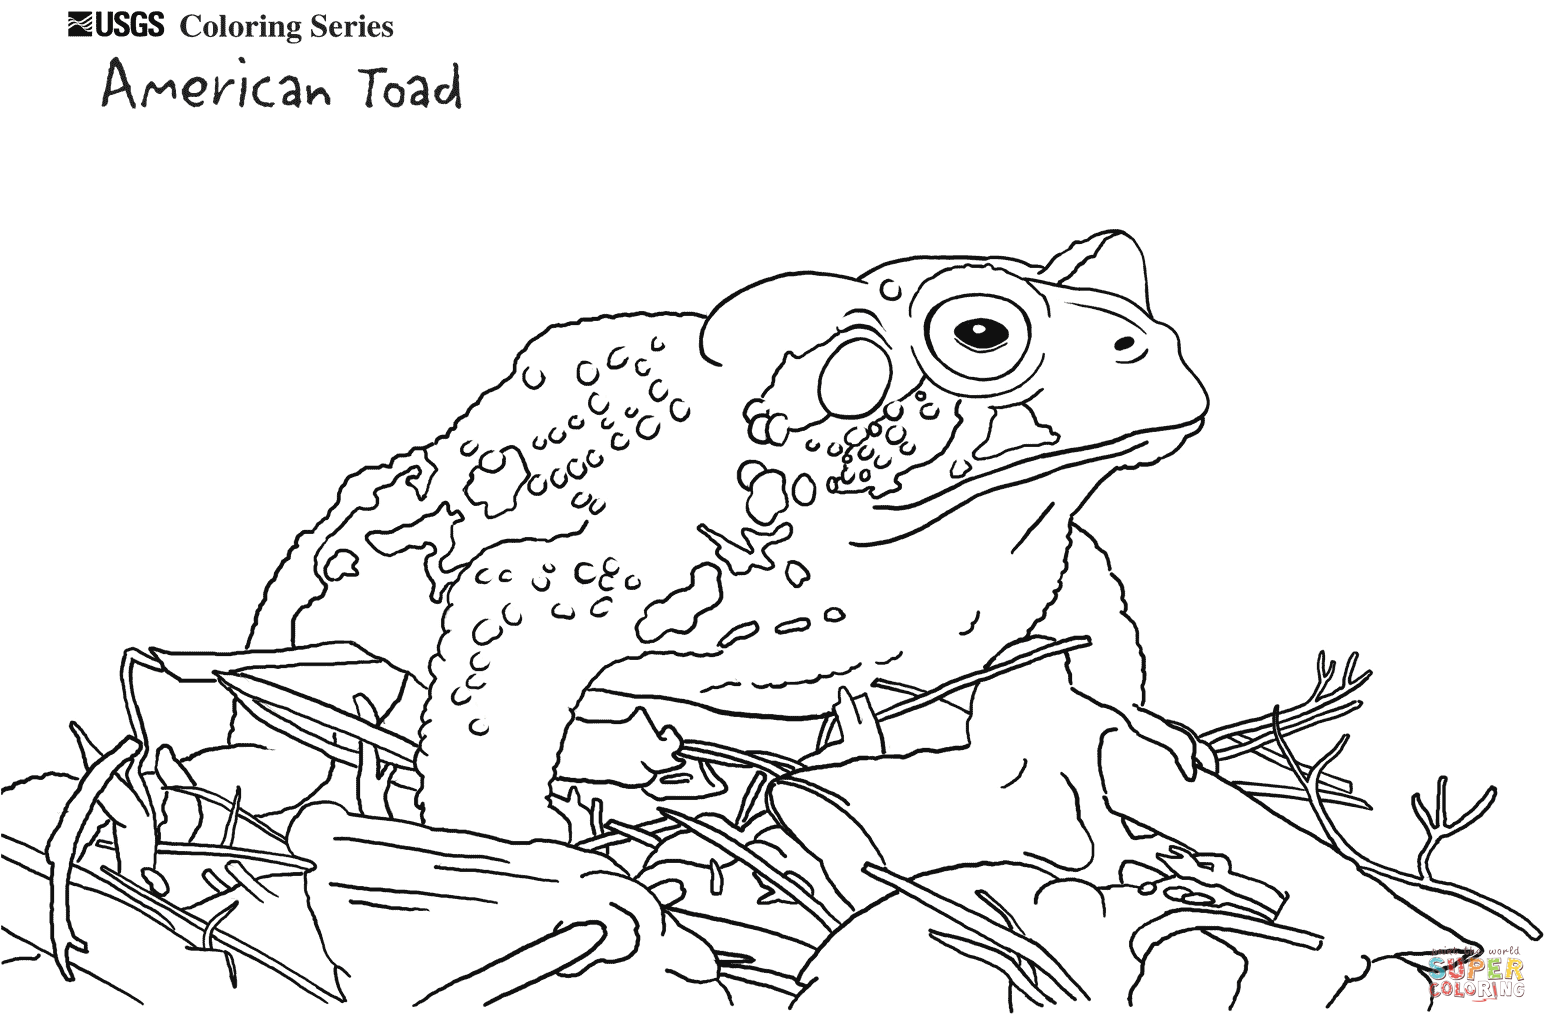 American Toad coloring #11, Download drawings